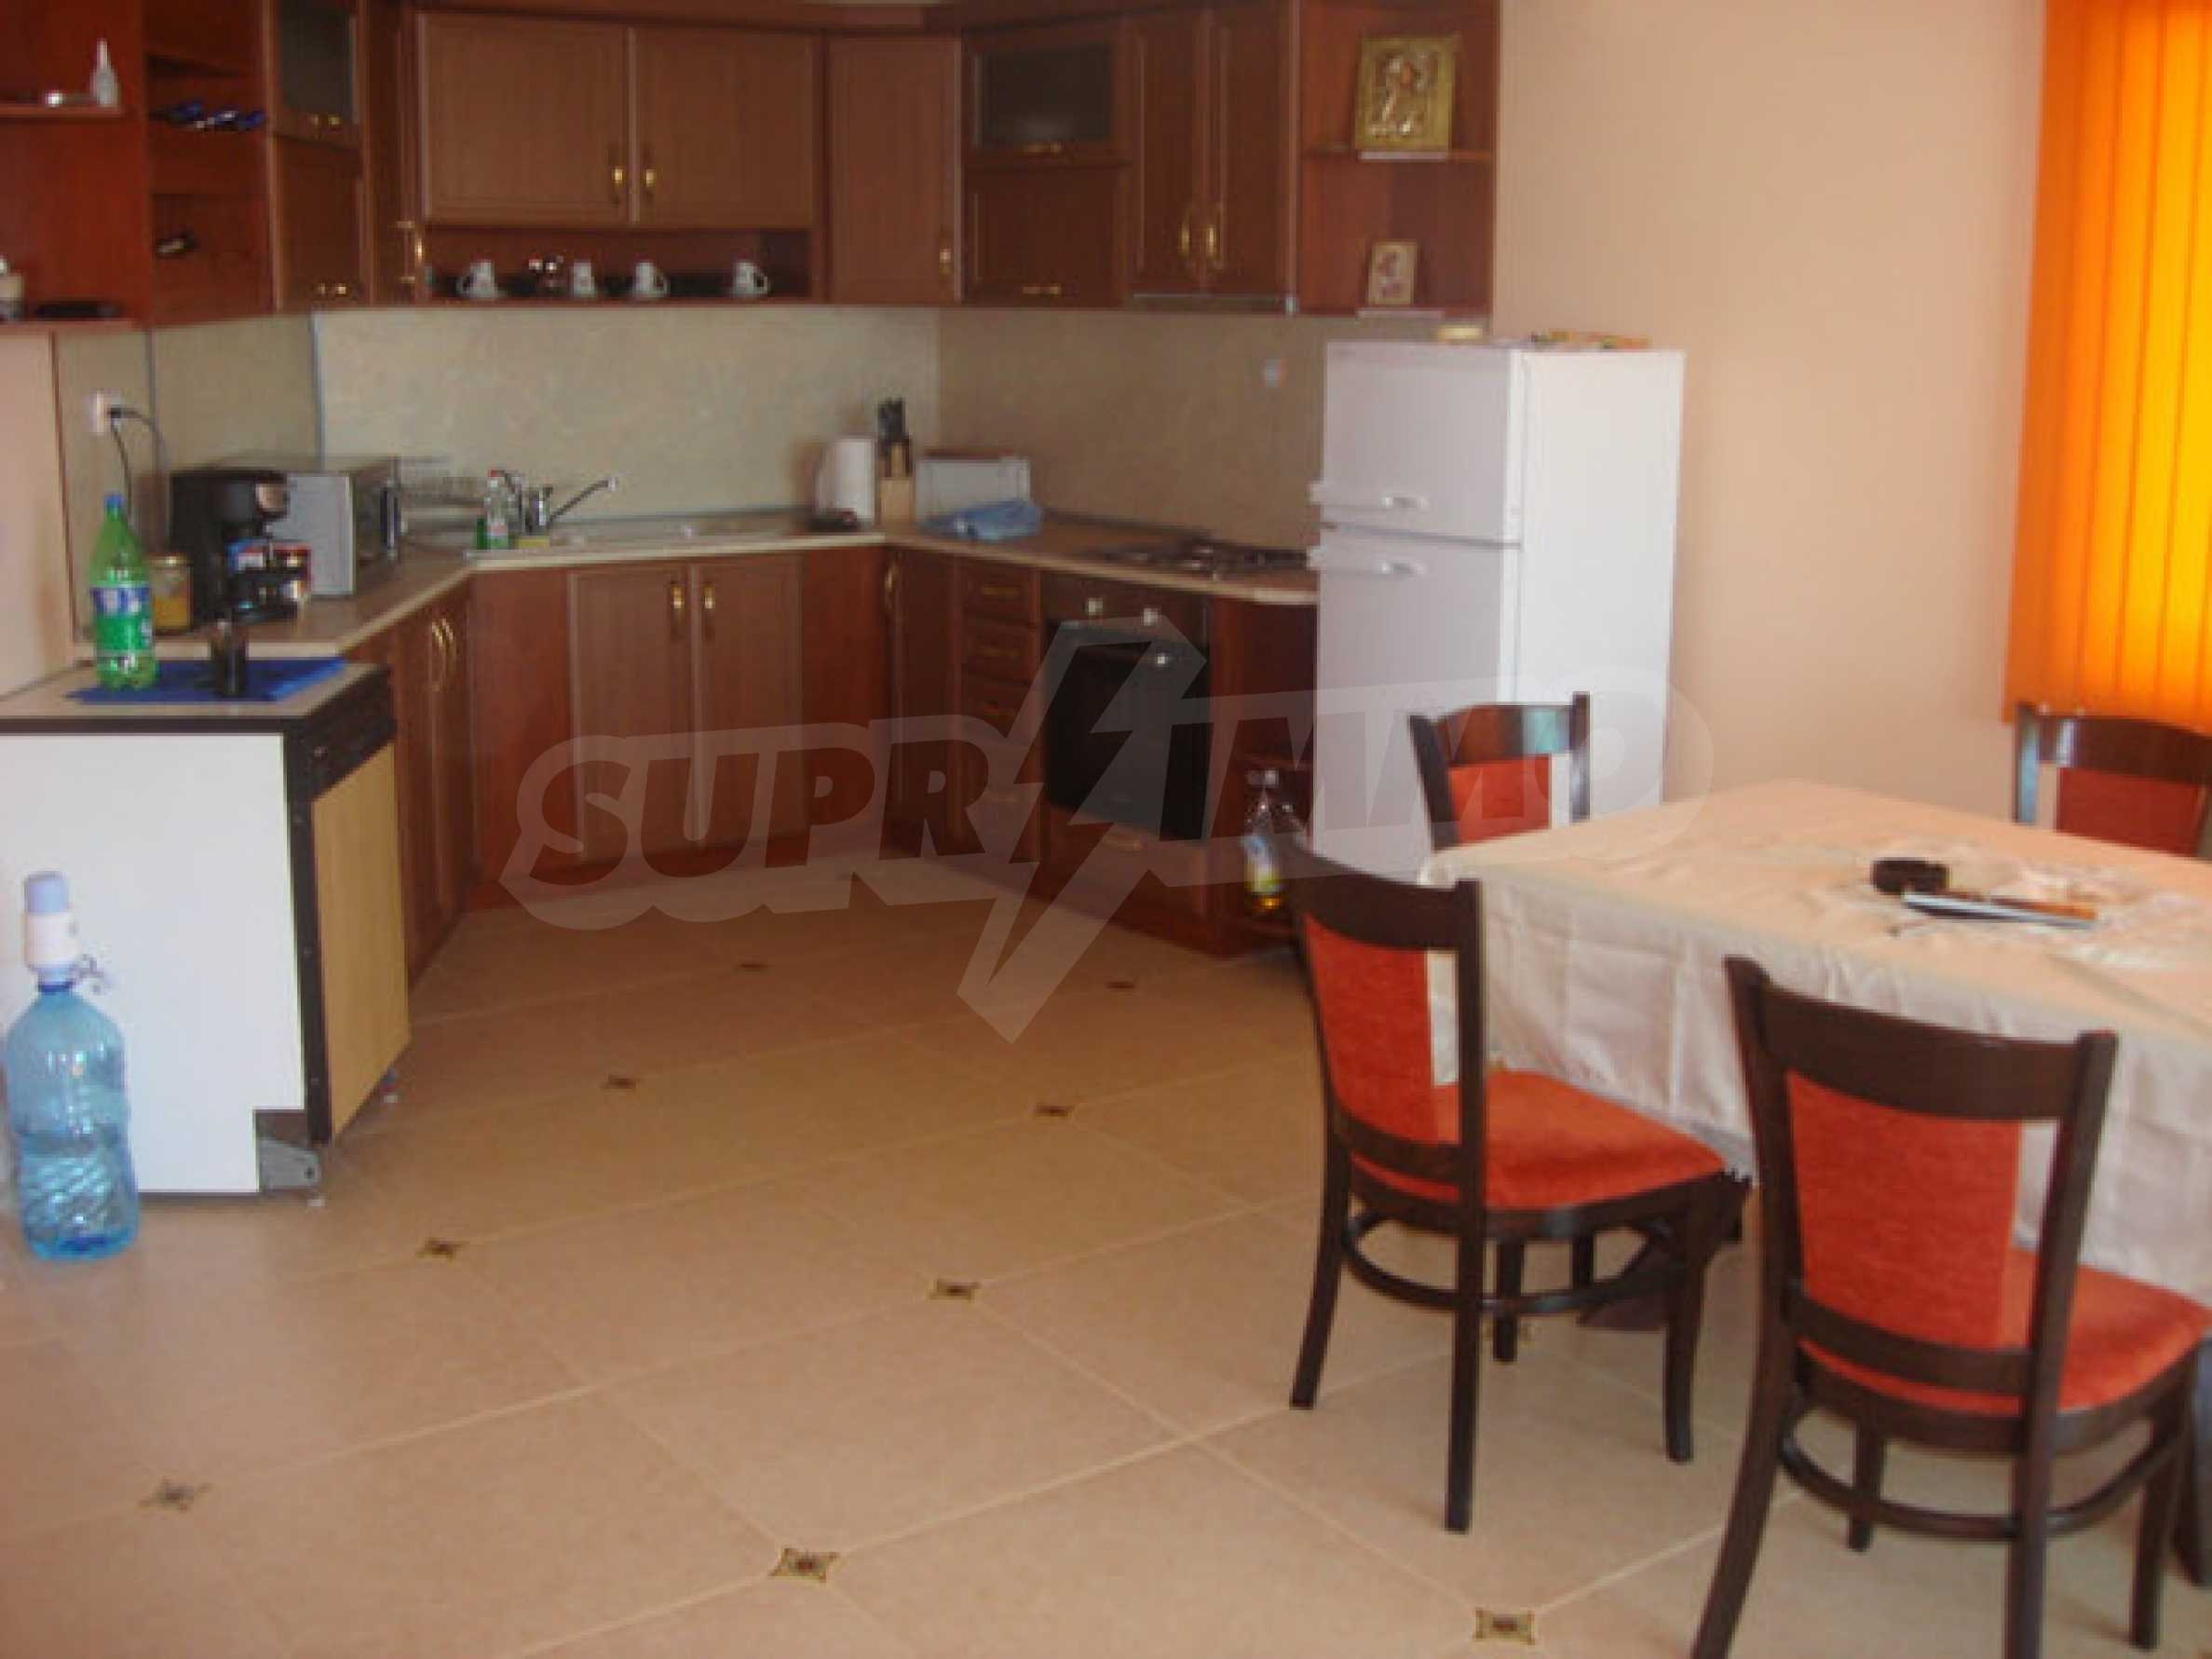 House for sale in Topola village 8